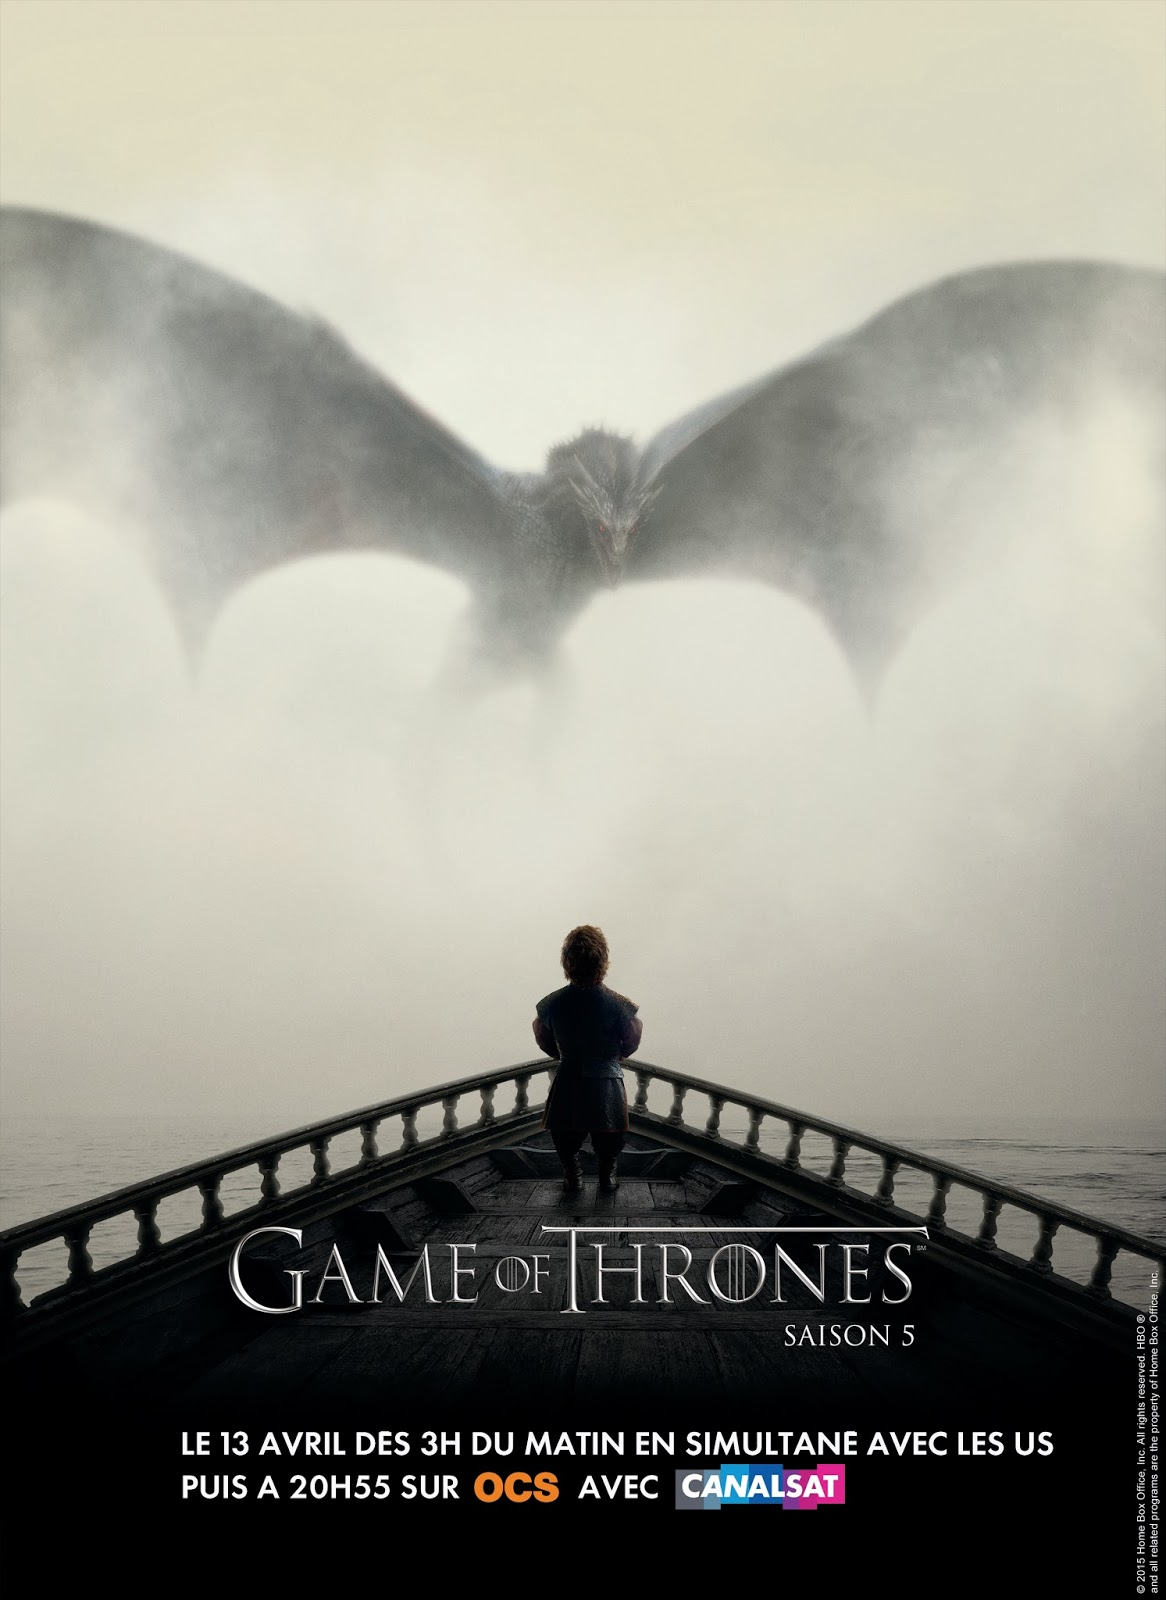 <i>Game Of Thrones</i> saison 5, une série indétrônable / <i>Game Of Thrones</i> season 5, an undethronable series 3 image